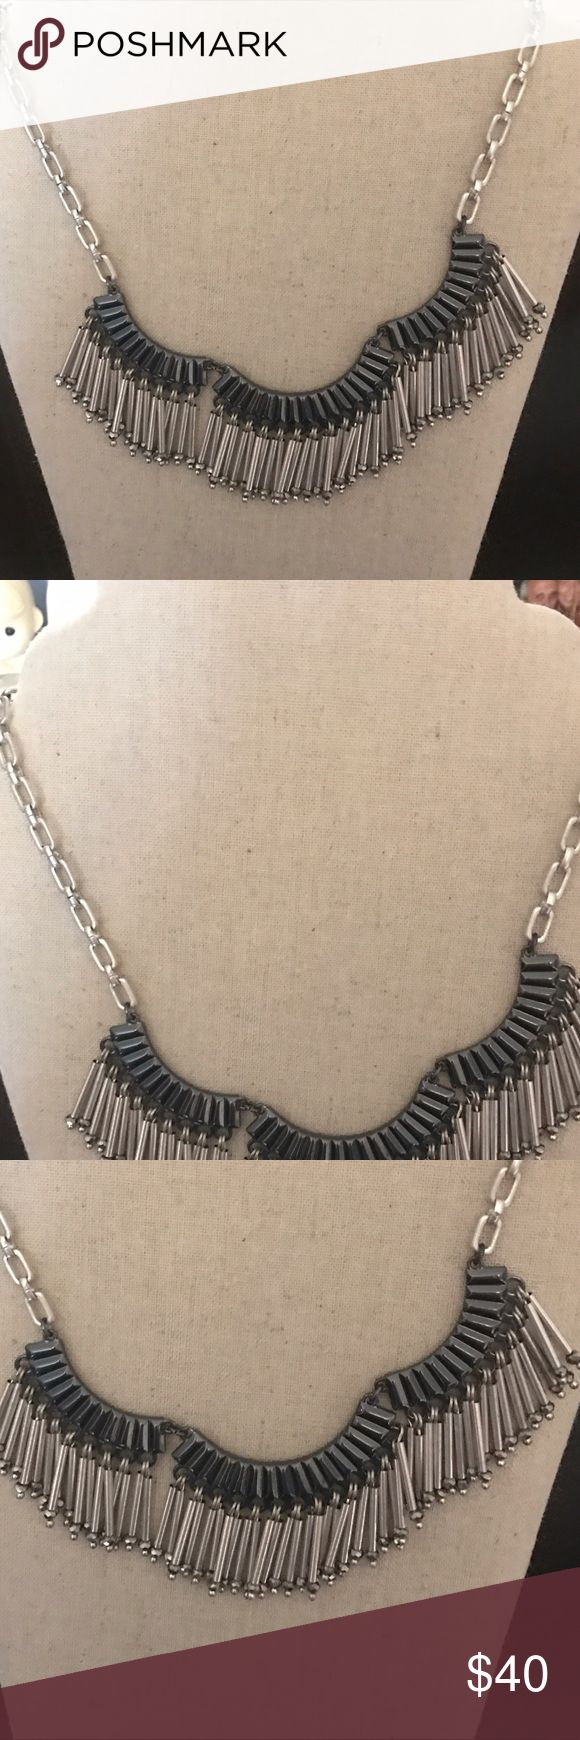 Stella and dot necklace Brand new!!! Excellent piece Stella & Dot Jewelry Necklaces